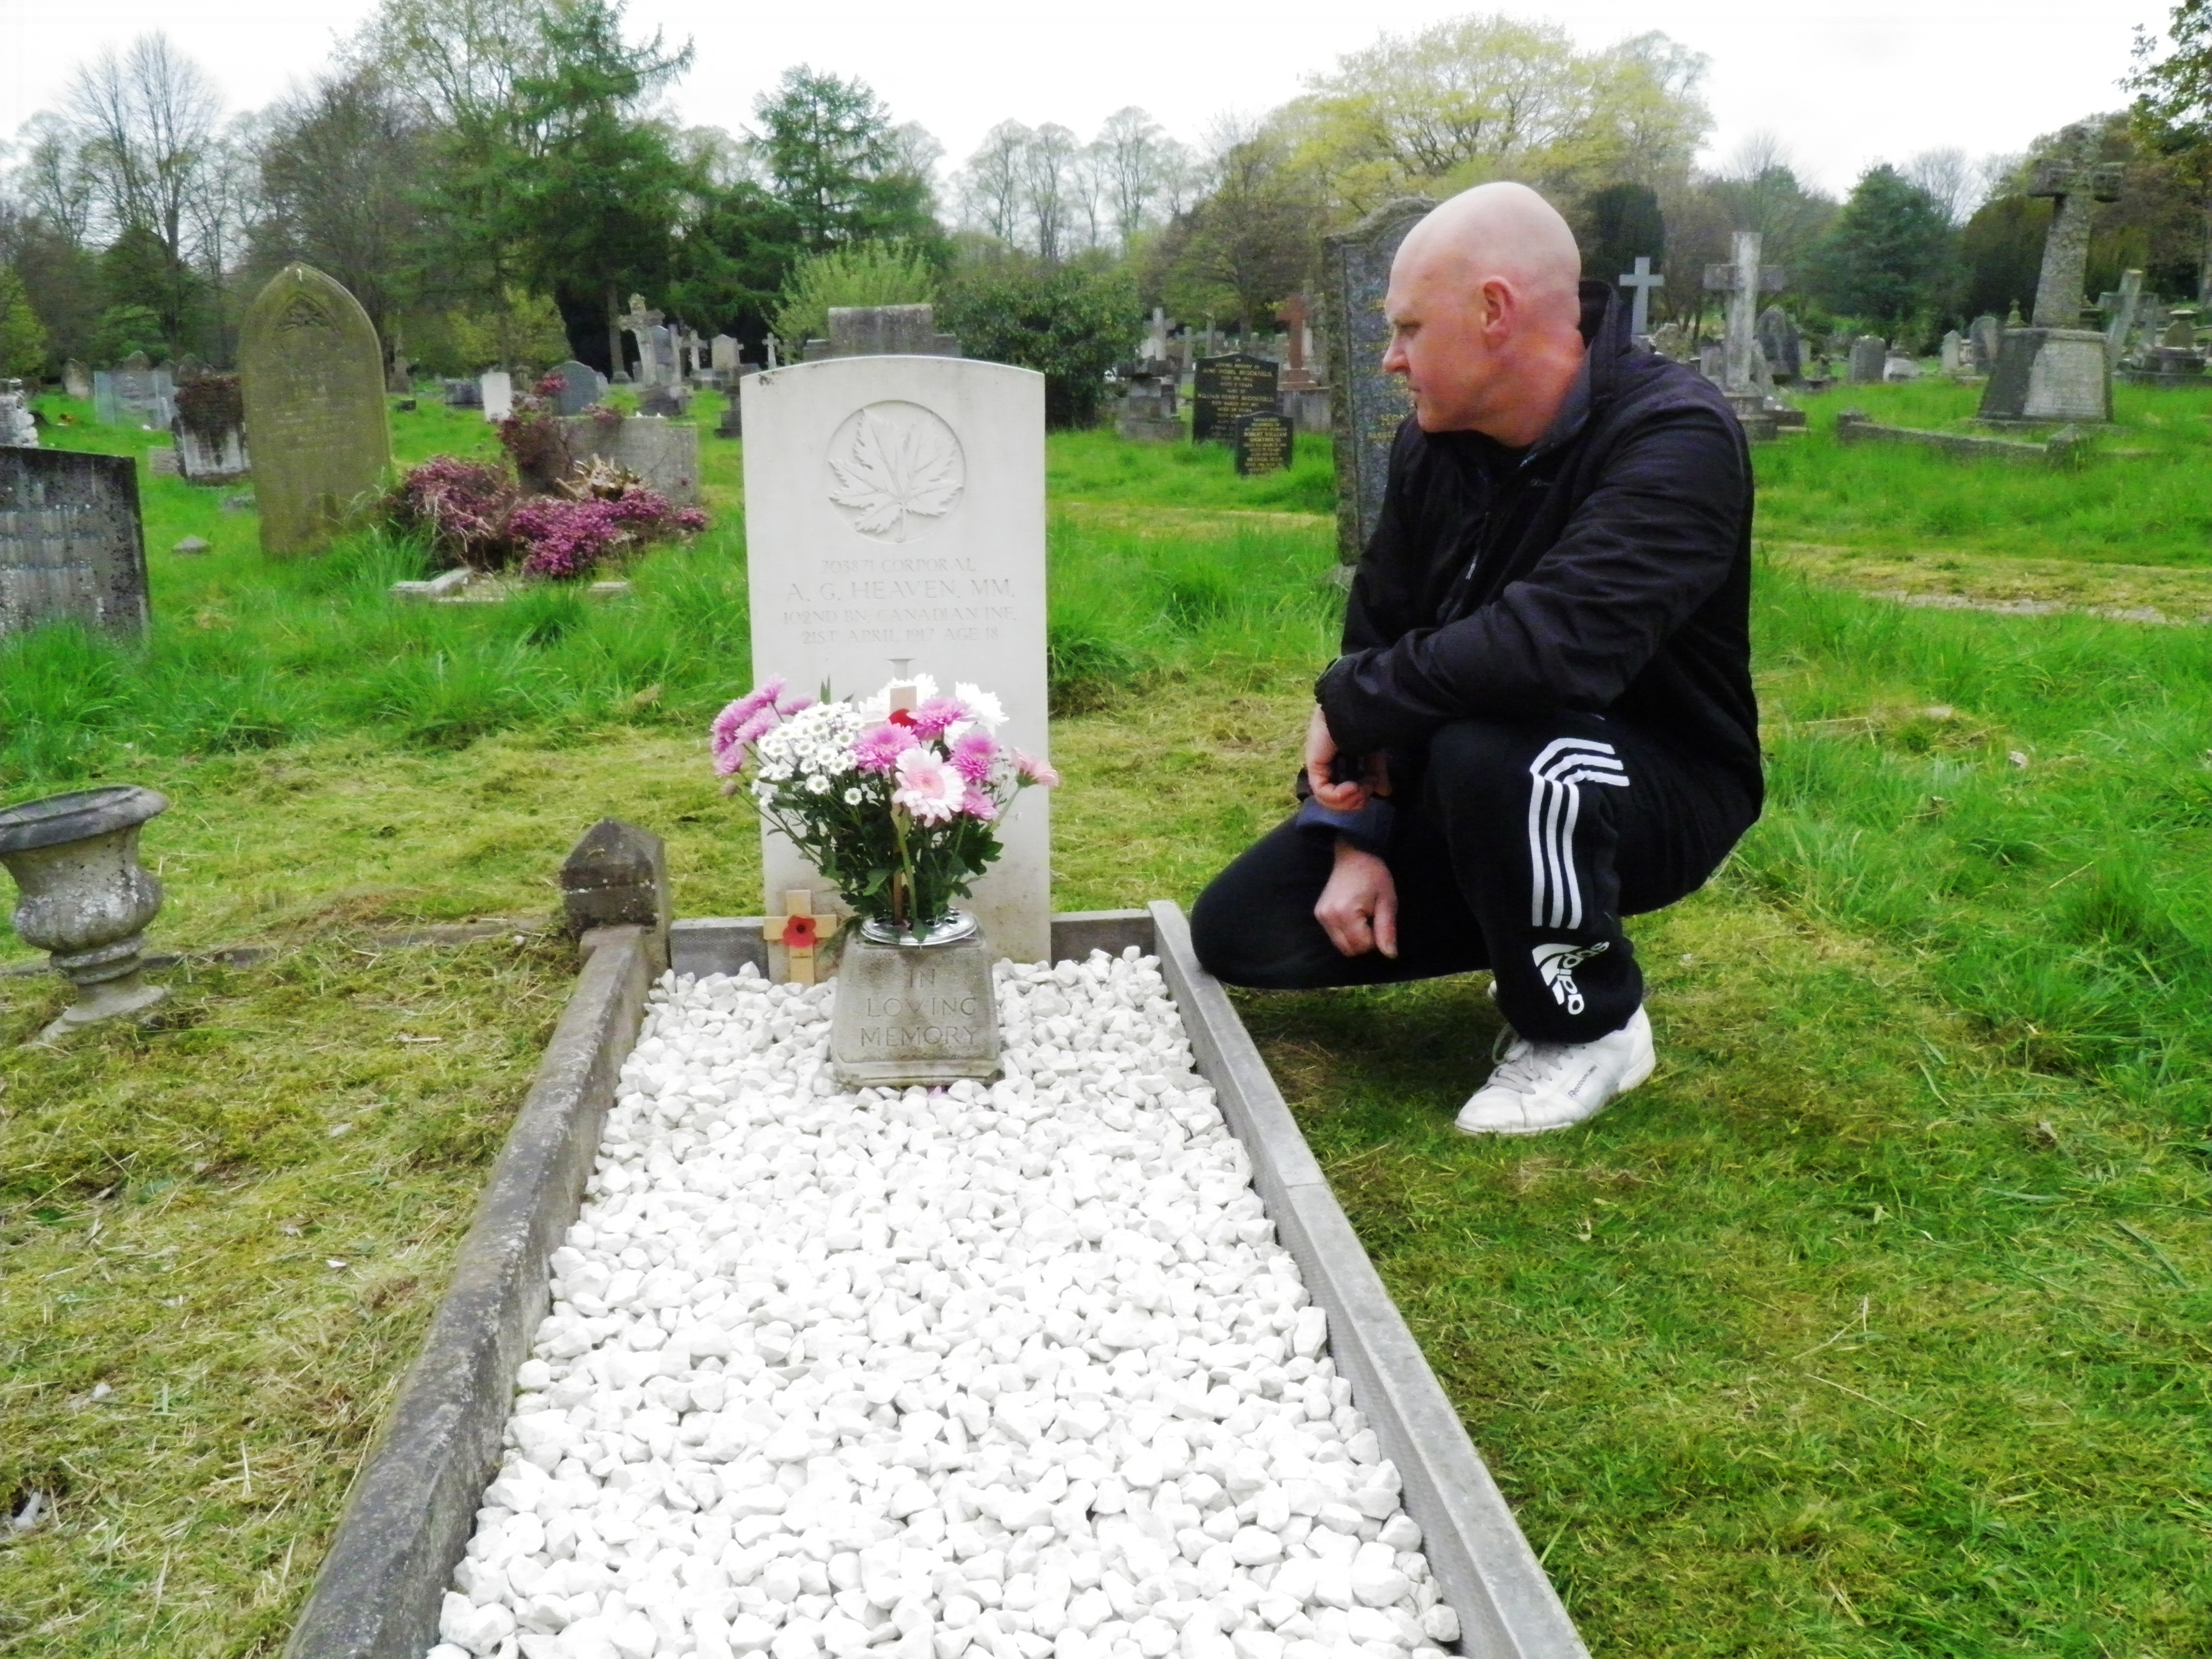 Paying respects – Philip Morris paying respects to a soldier buried a long way from home and the 100 Anniversary of his death the grave as been cleaned and restored fitting of an hero who lost his life so young  GOD BLESS